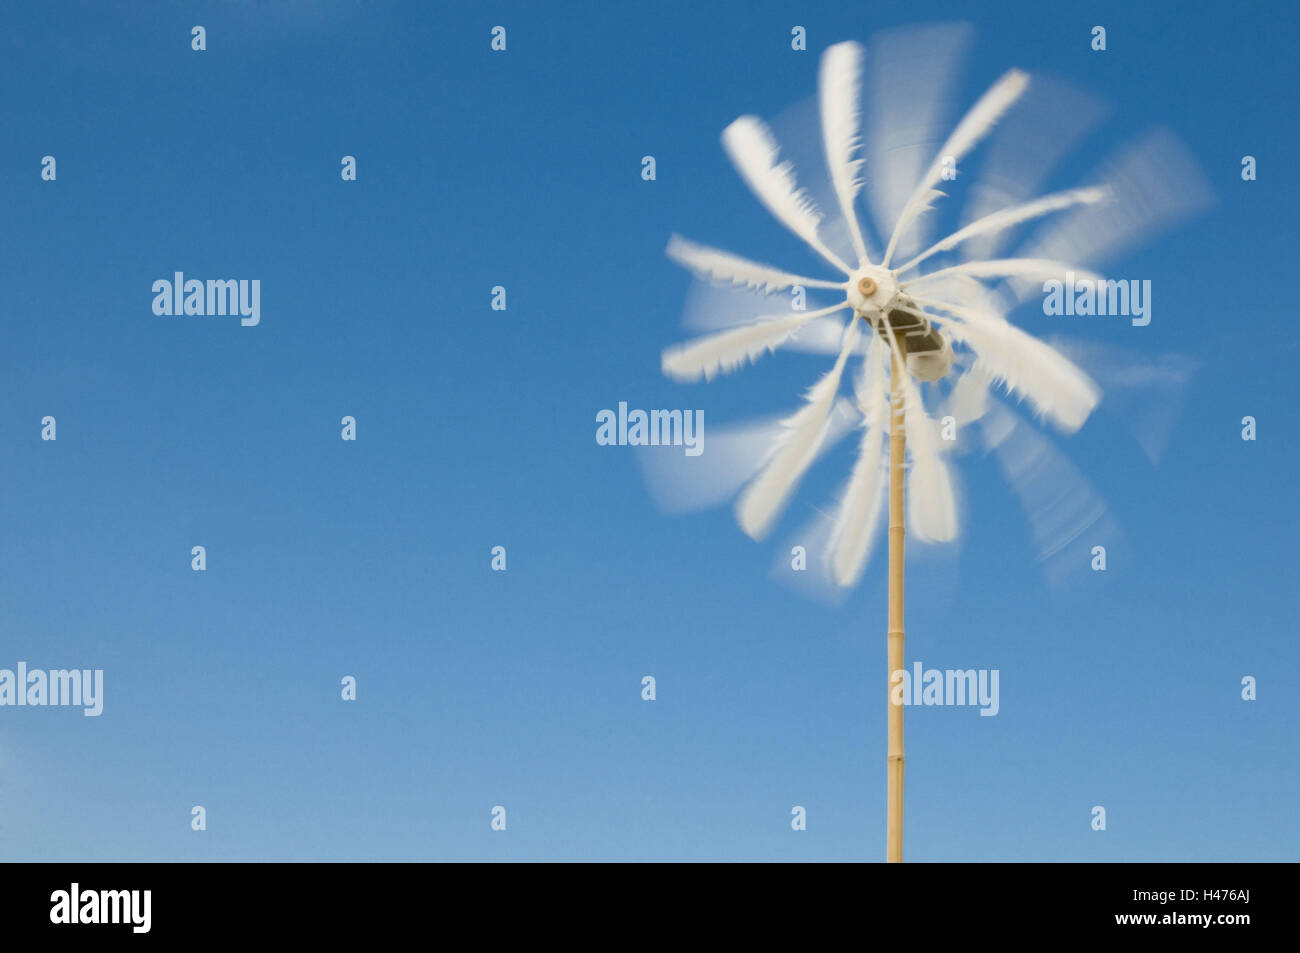 Pinwheel made of feathers rotates against bright blue sky, - Stock Image